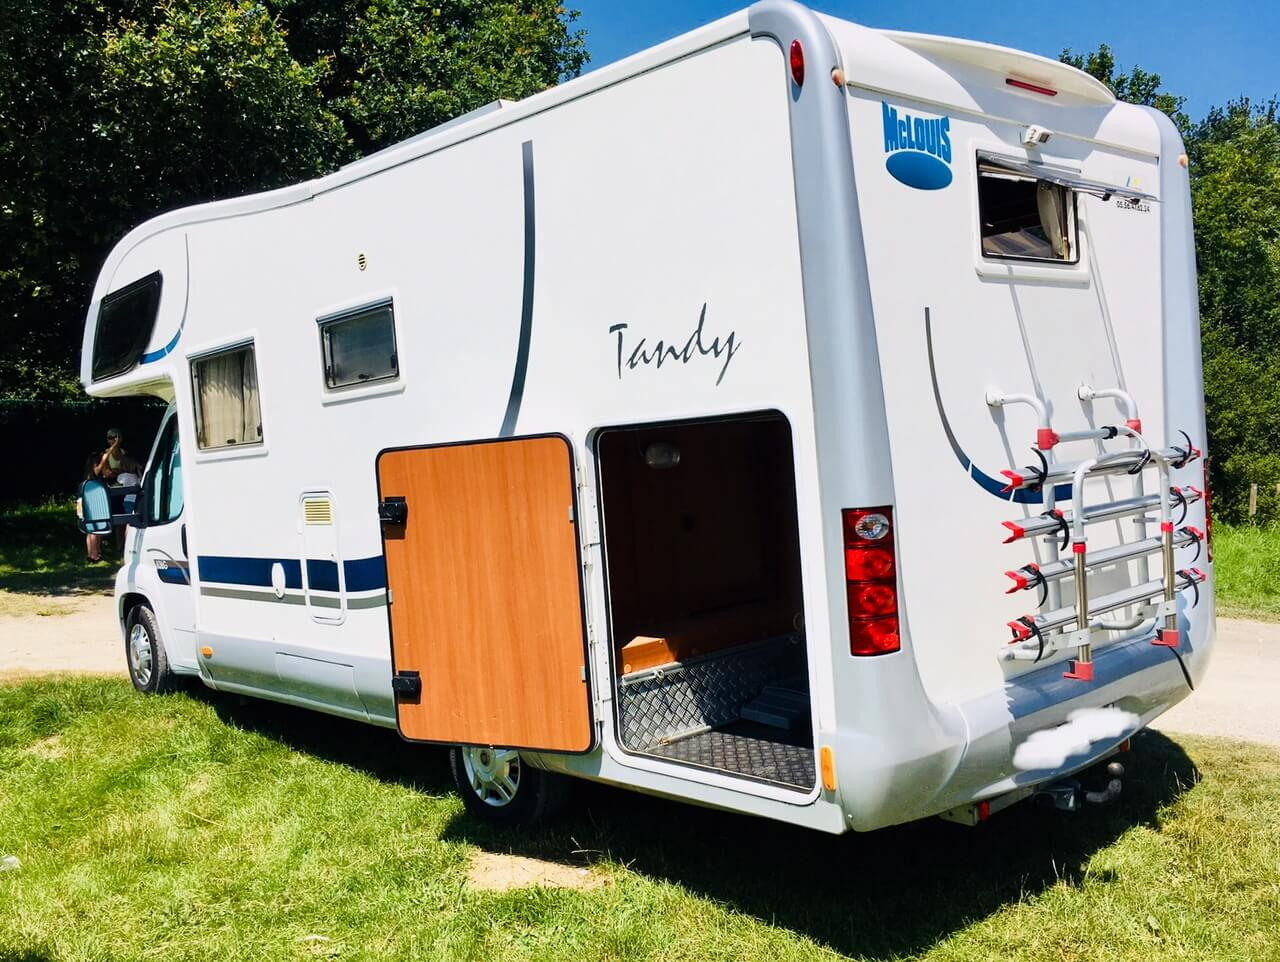 camping-car MC LOUIS TANDY 636 G